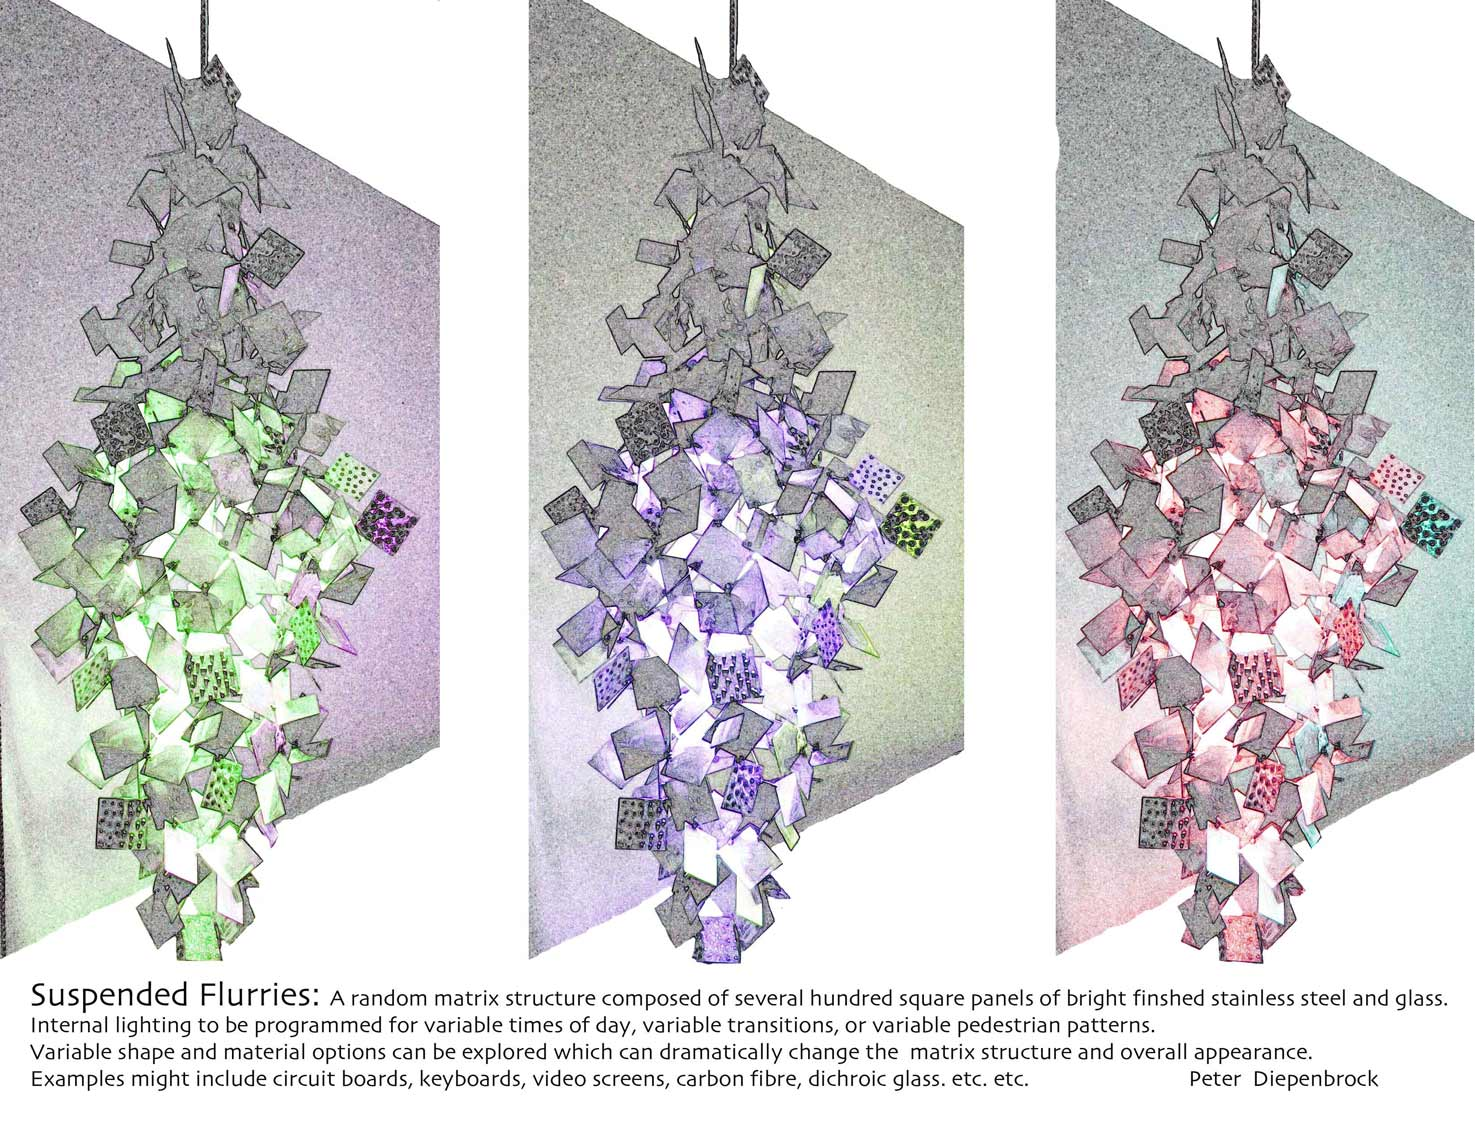 Multi-color-flurries studies for suspended sculptural lighting project by Peter Diepenbrock